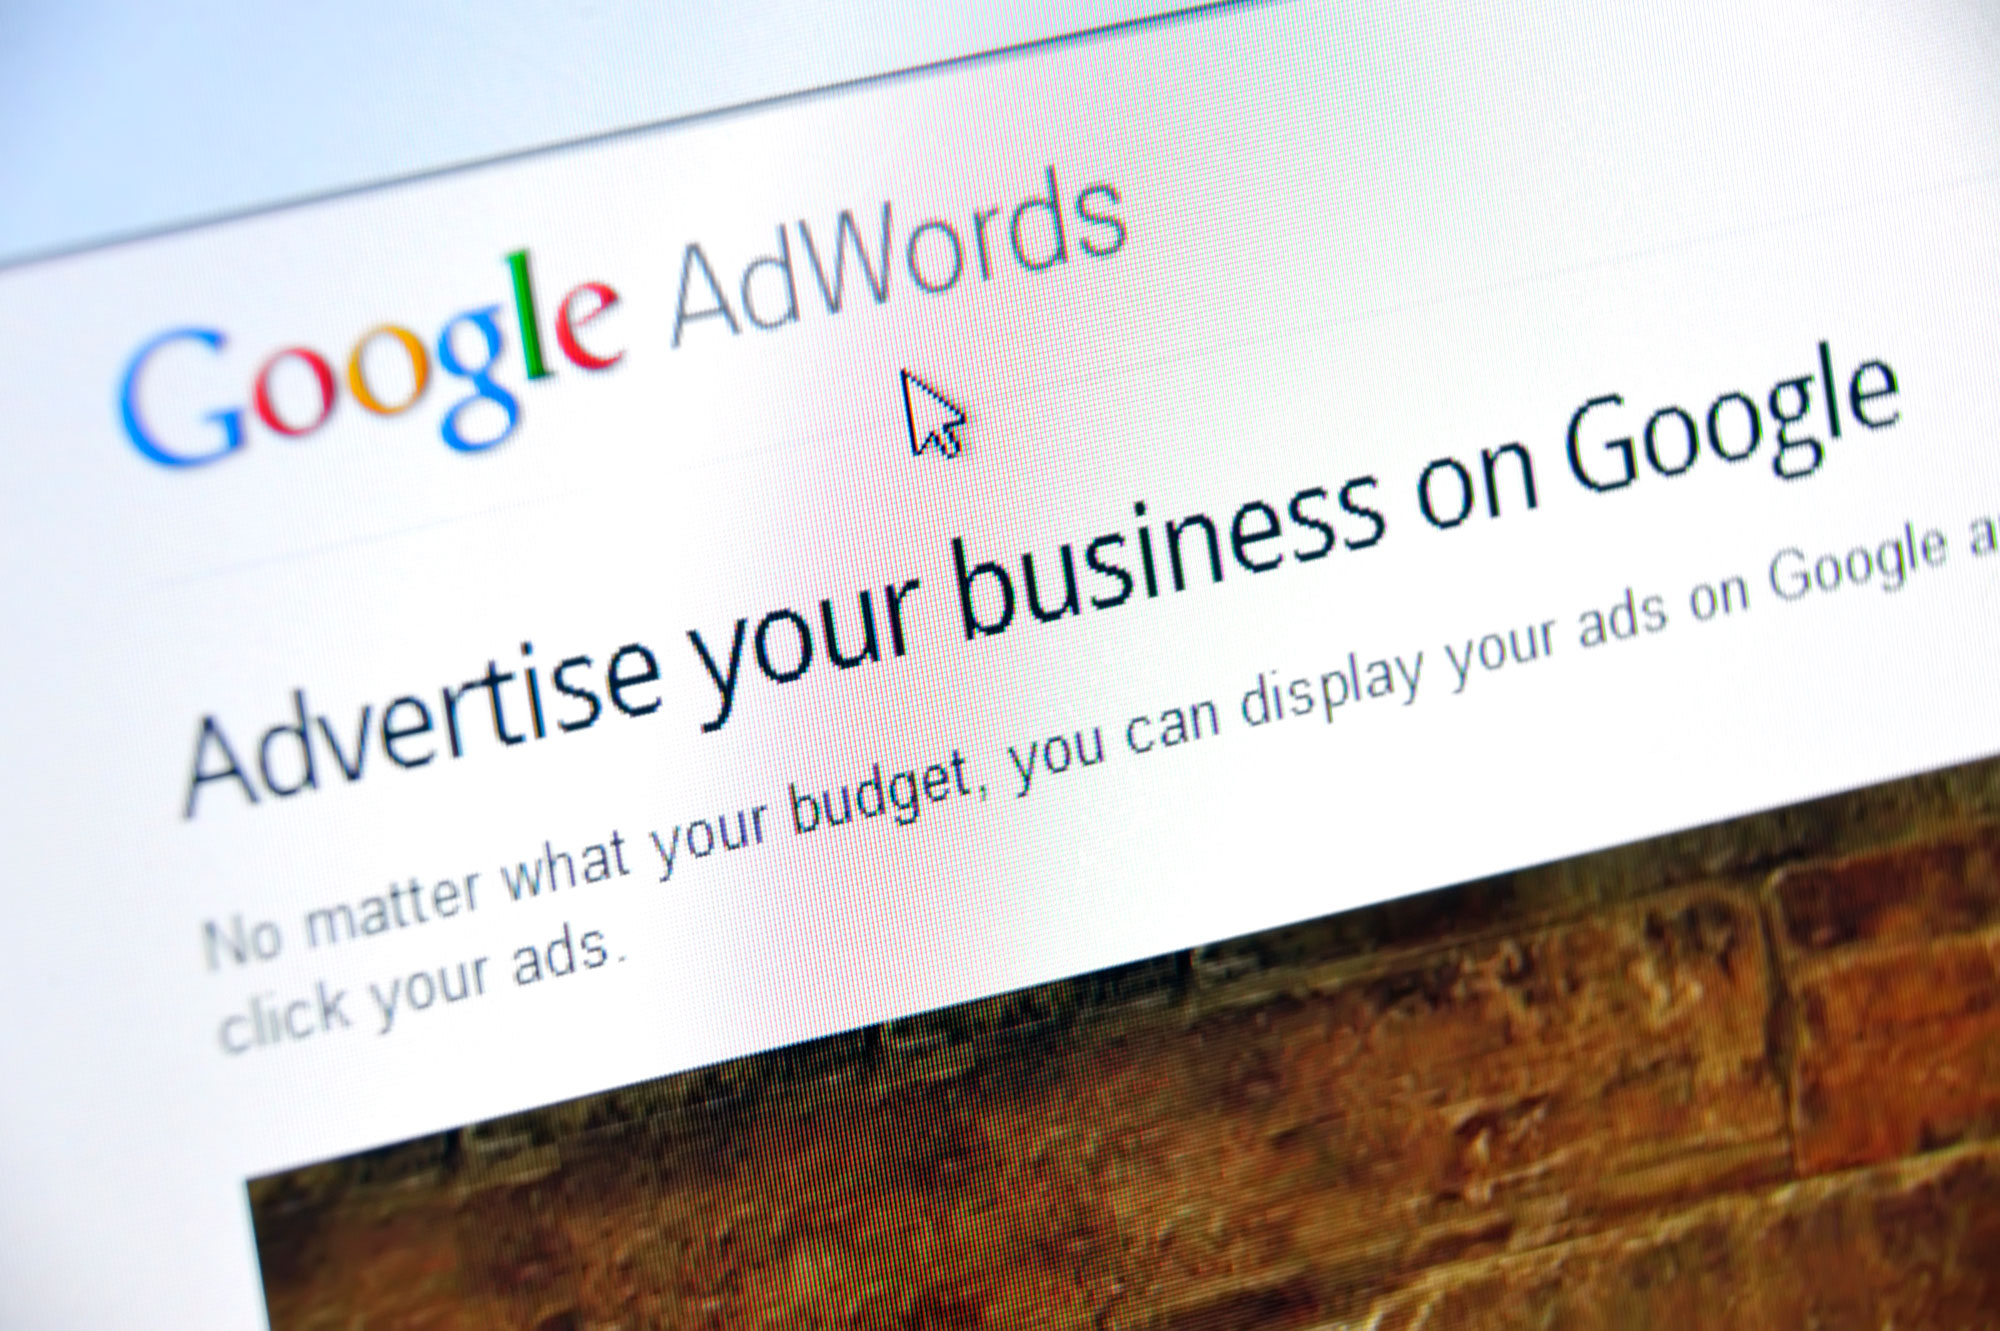 How much does Google Adwords cost? | The Web Centre